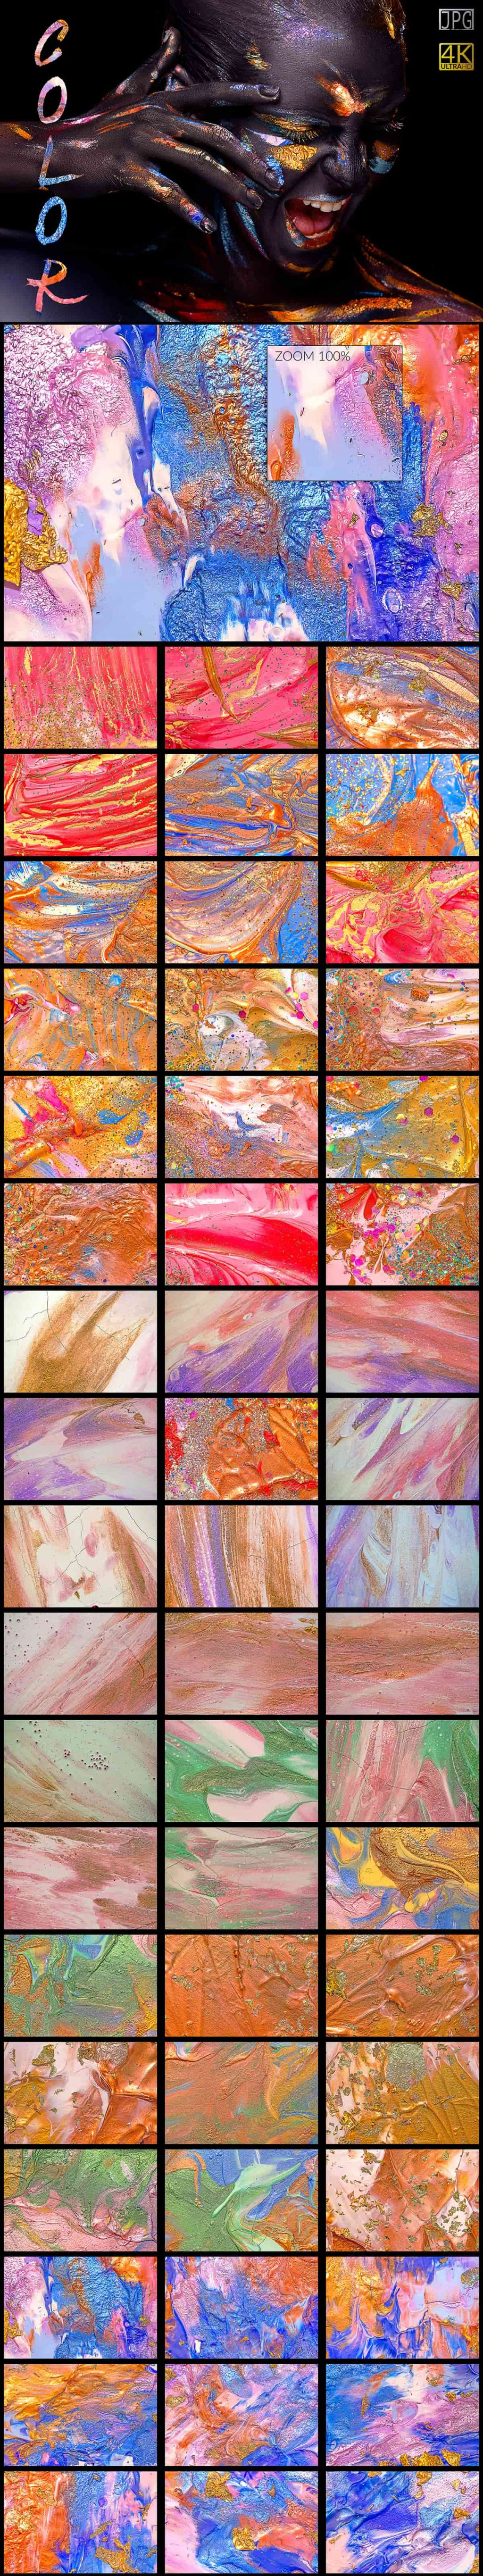 7662 Colorful Backgrounds Collection JPG - Colors min